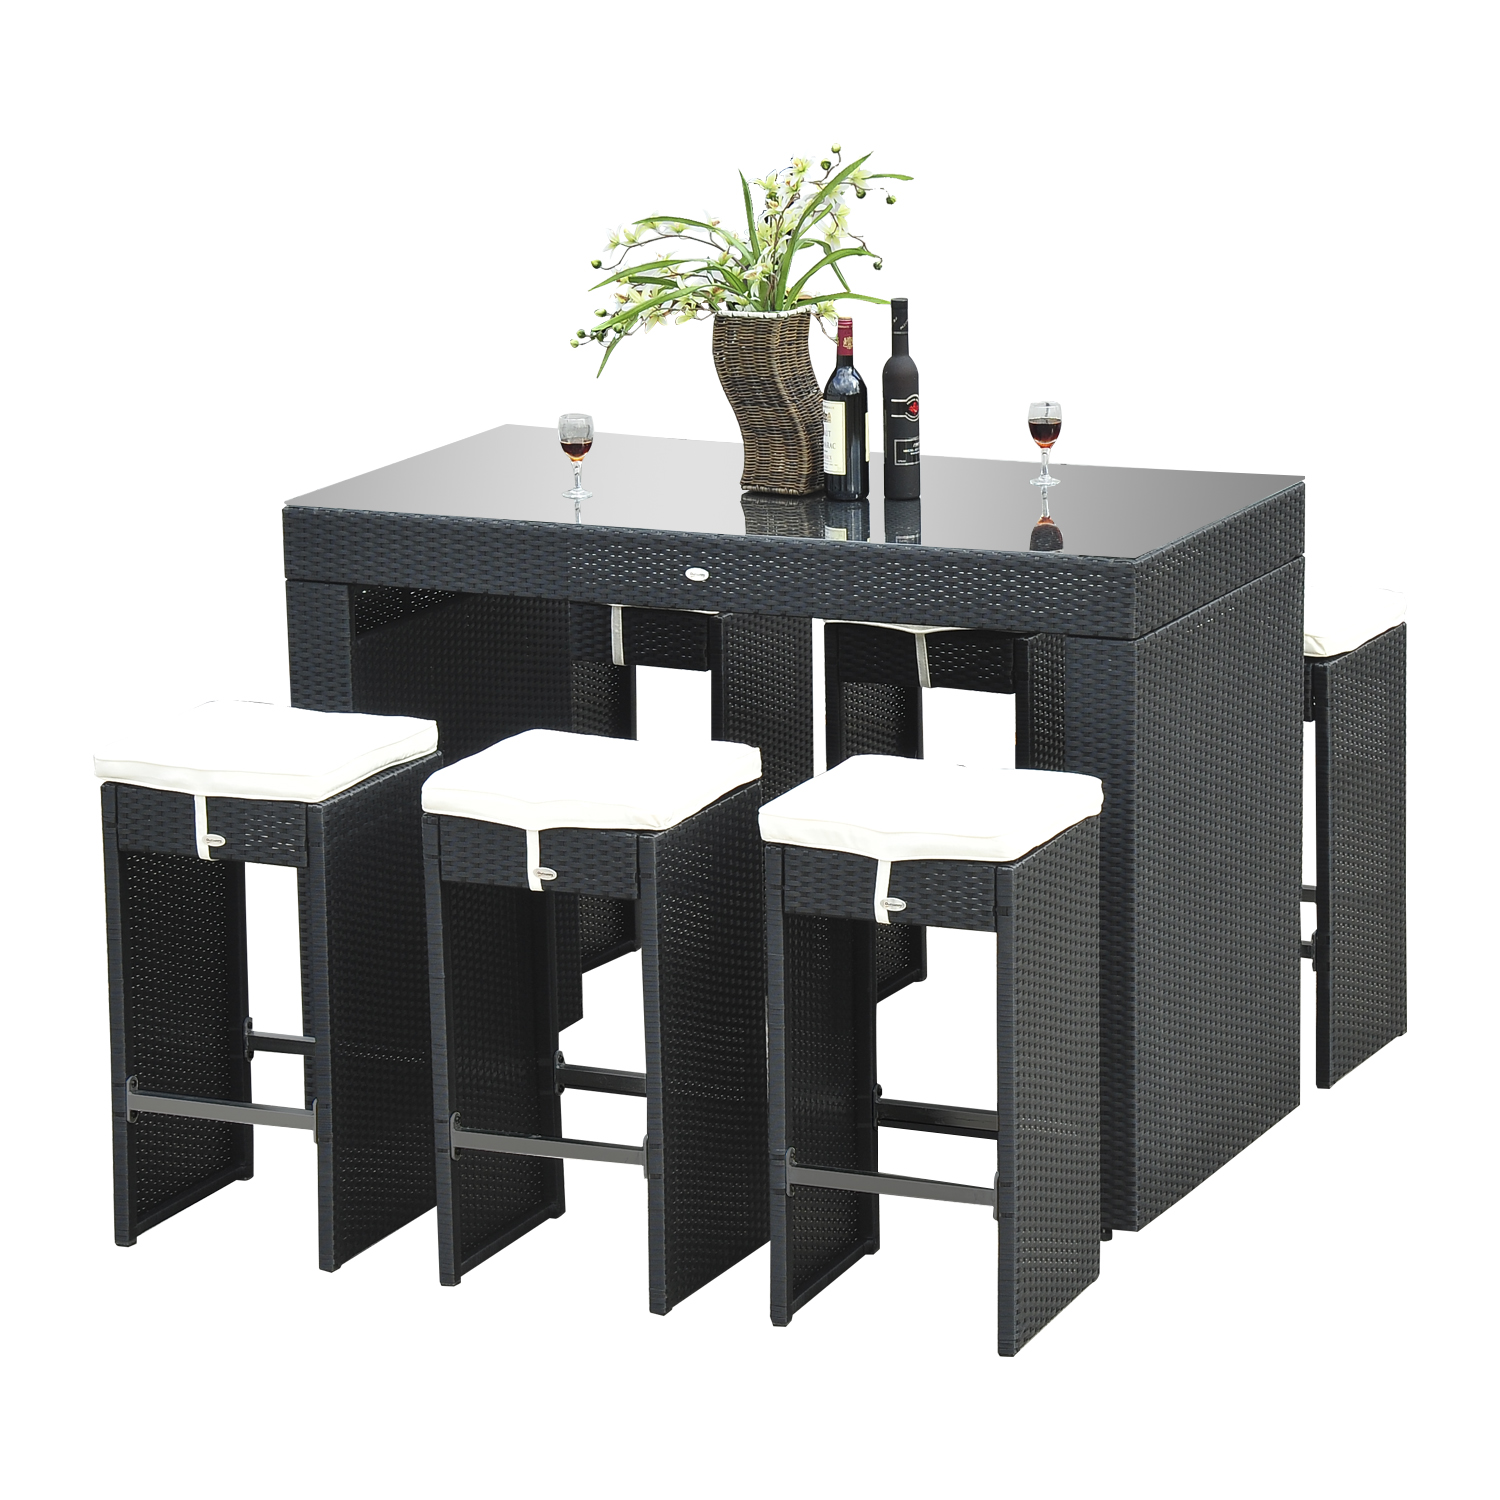 Delightful Bar Chairs And Table Sets Part - 4: Outsunny 7 Piece Rattan Wicker Bar Stool Dining Table Set - Black -  Walmart.com